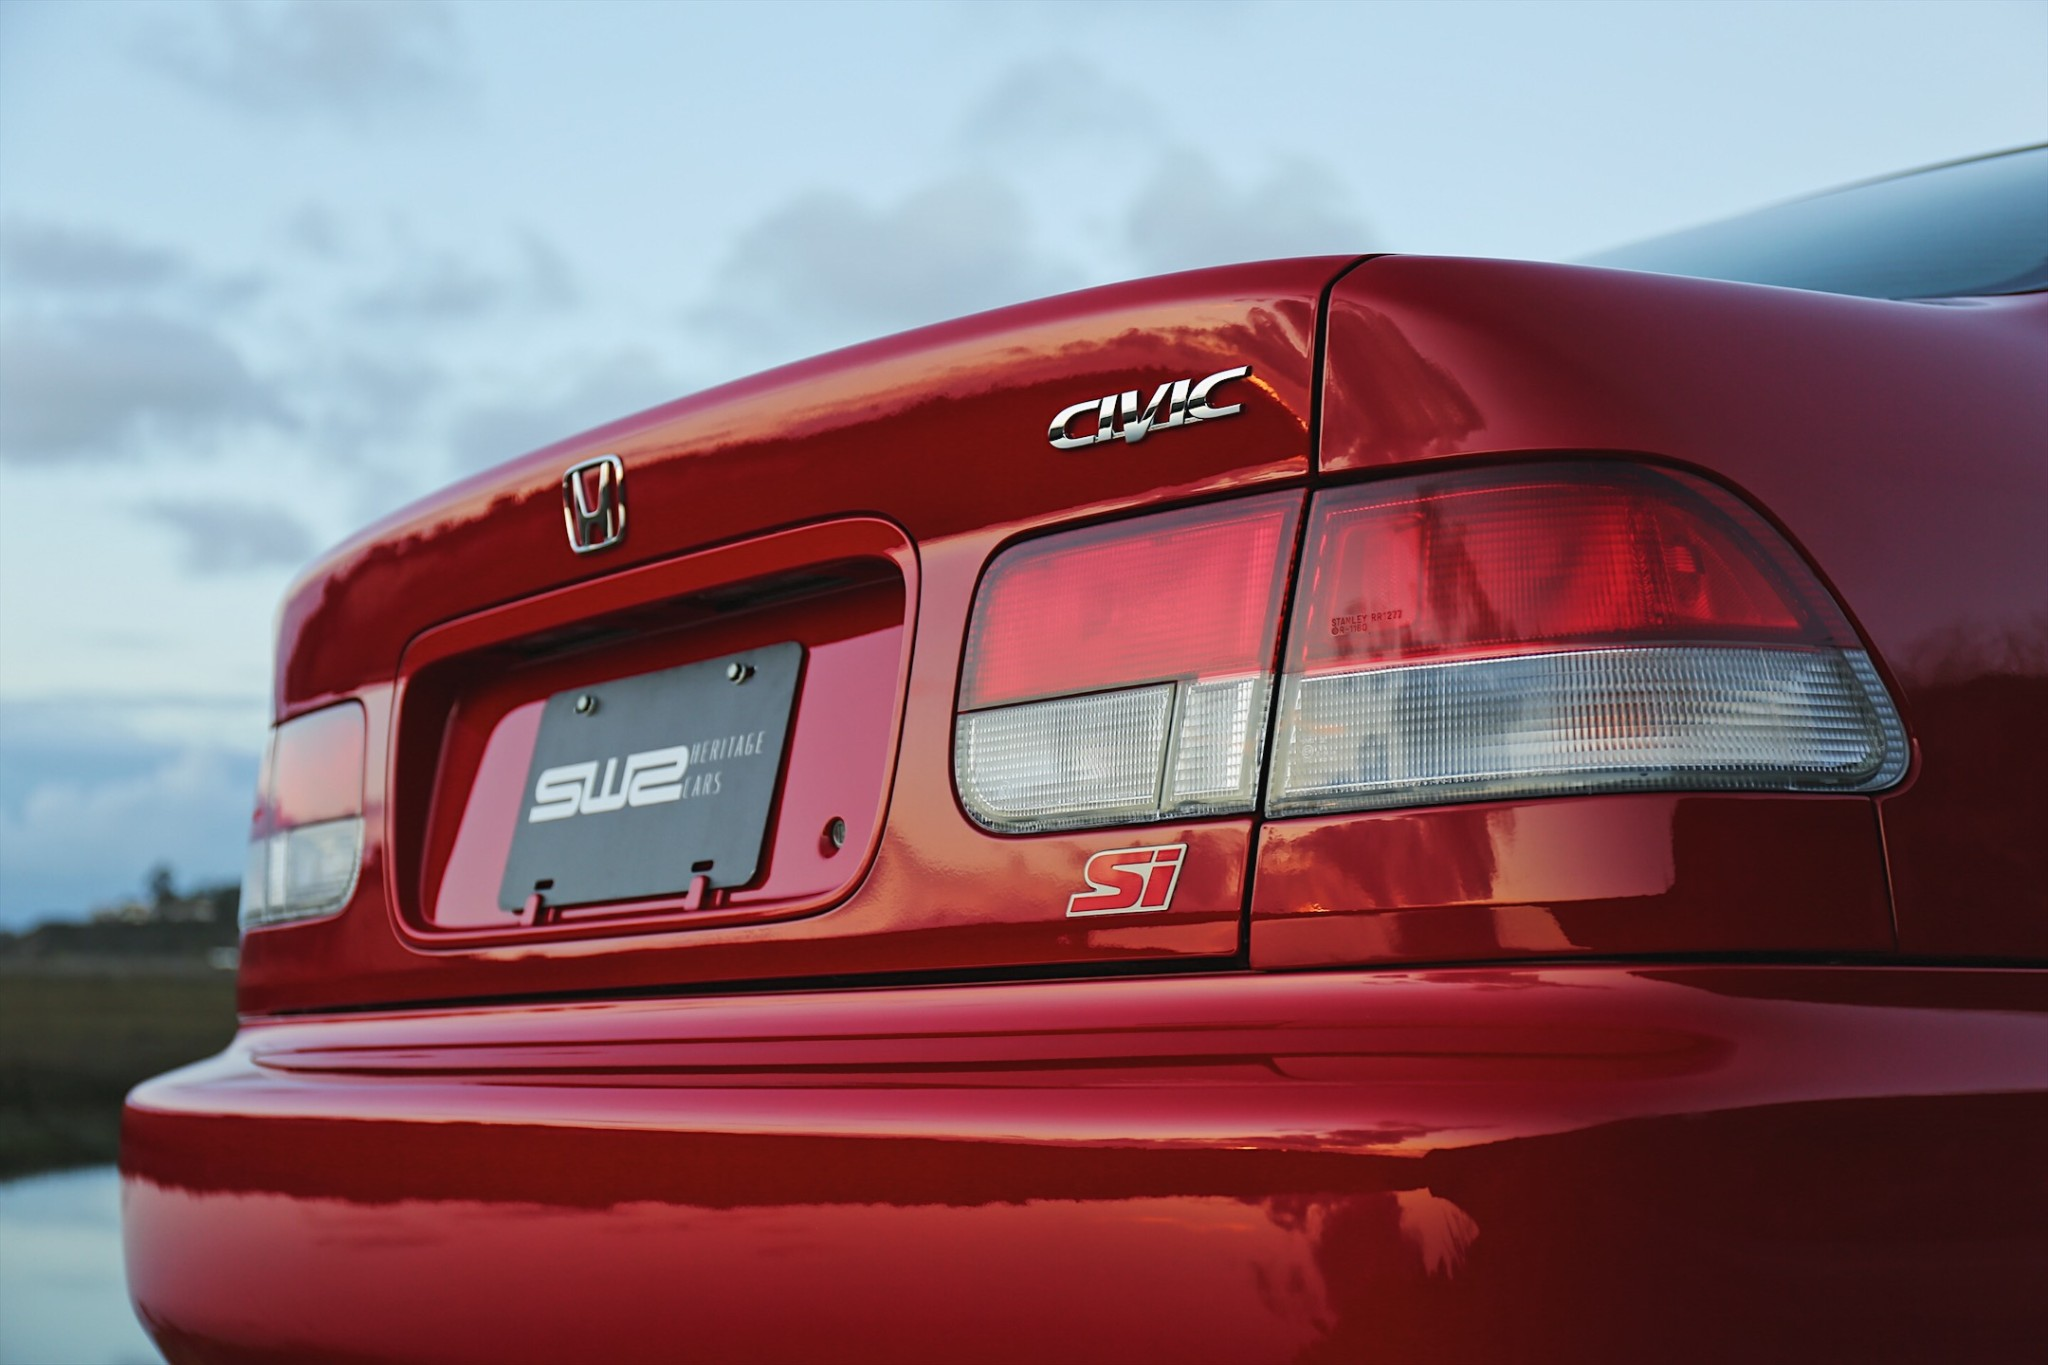 2000 Honda Civic Si rear